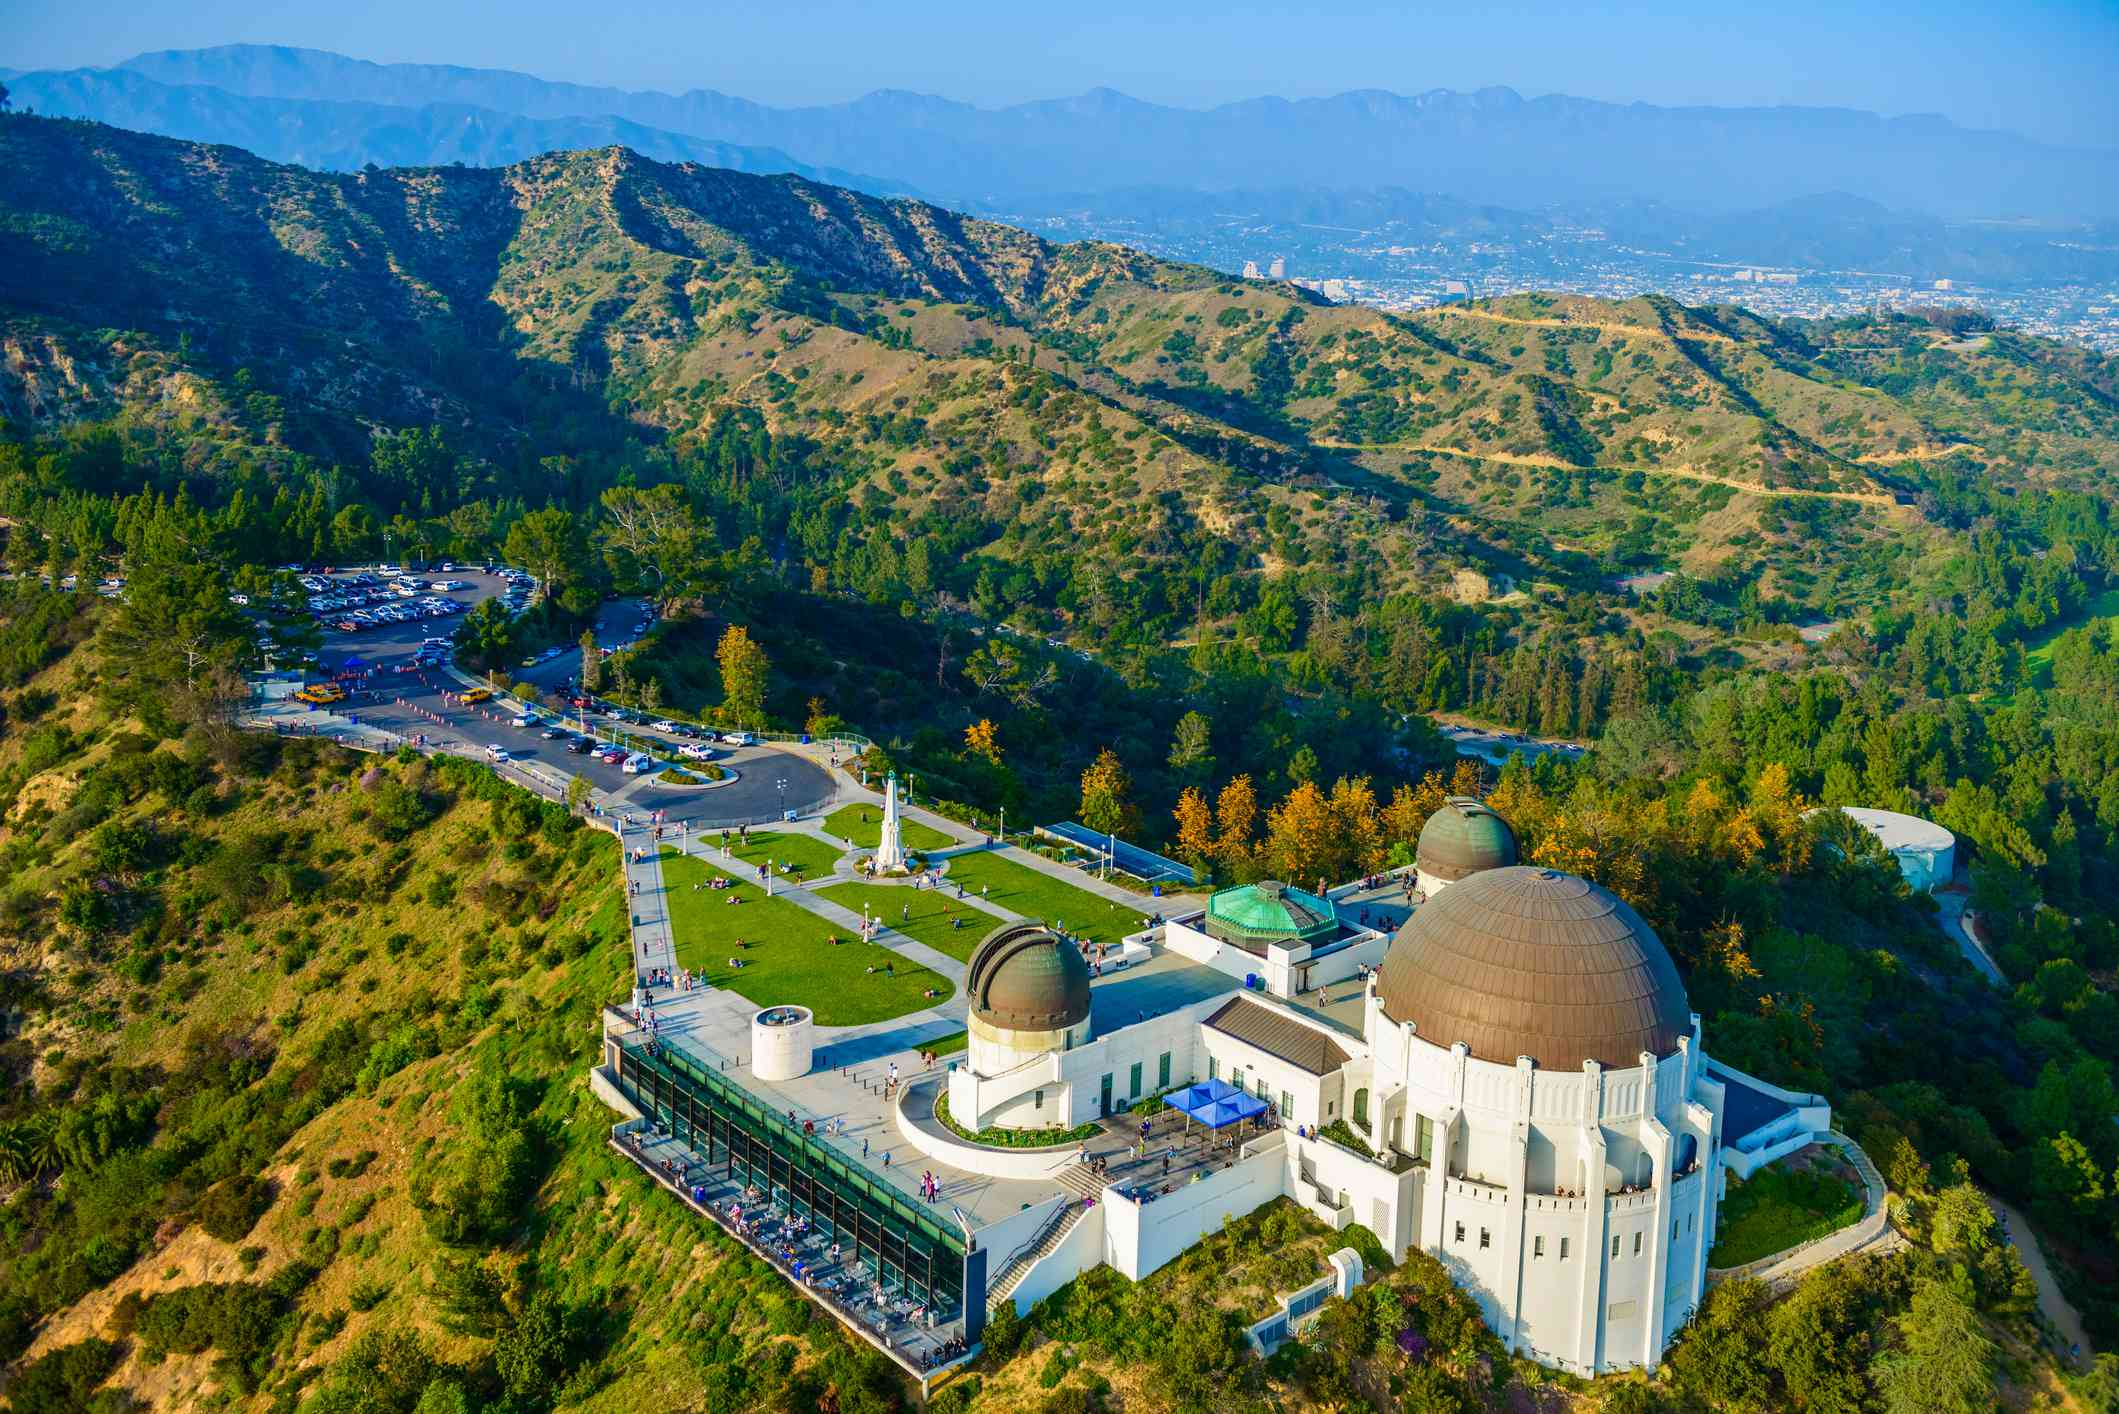 Aerial view of lush green hills of Griffith Park with the Griffith Observatory in the foreground